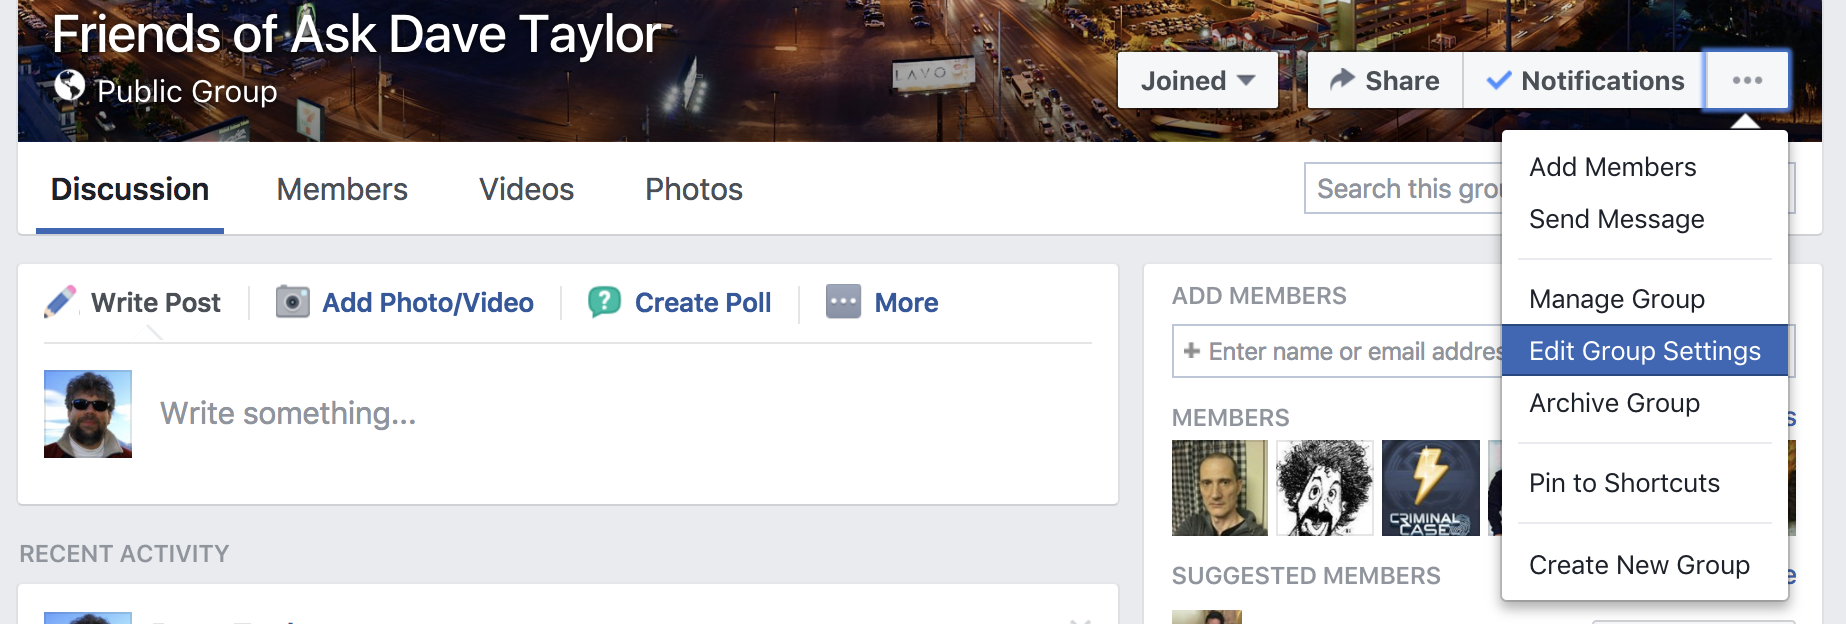 Change a Facebook Group Name? - Ask Dave Taylor